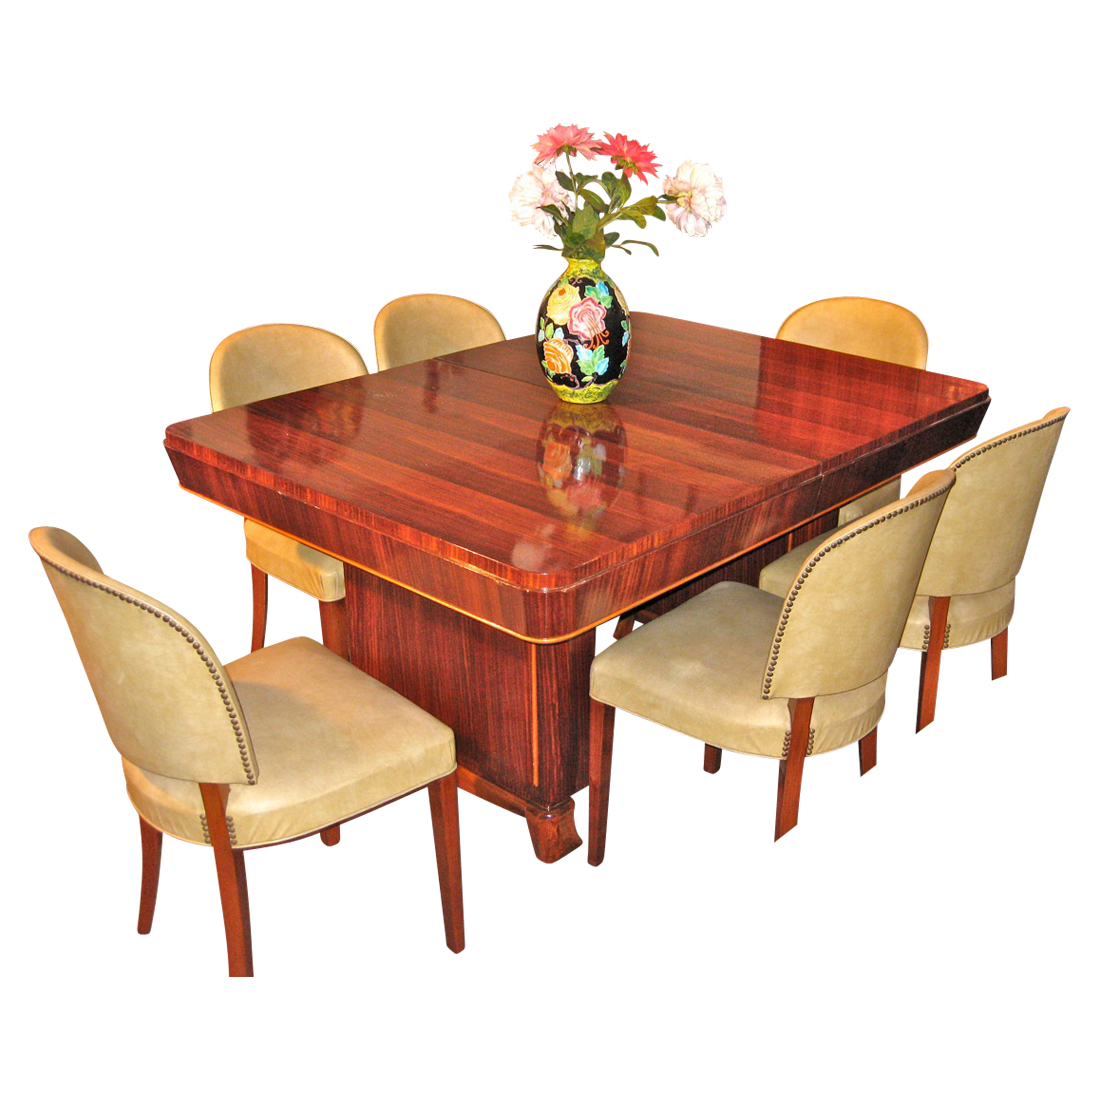 1940s Art Deco Mahogany Dining Suite